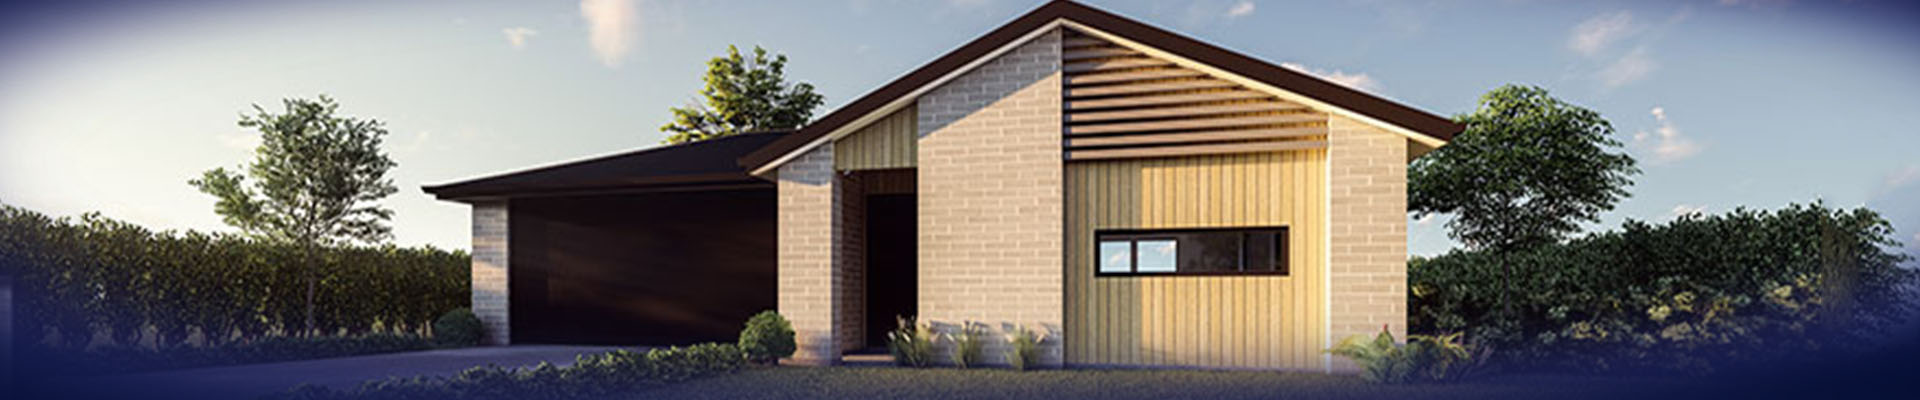 Headstart Homes By Hallmark NZ Little River Header - How to Choose the Right Builder